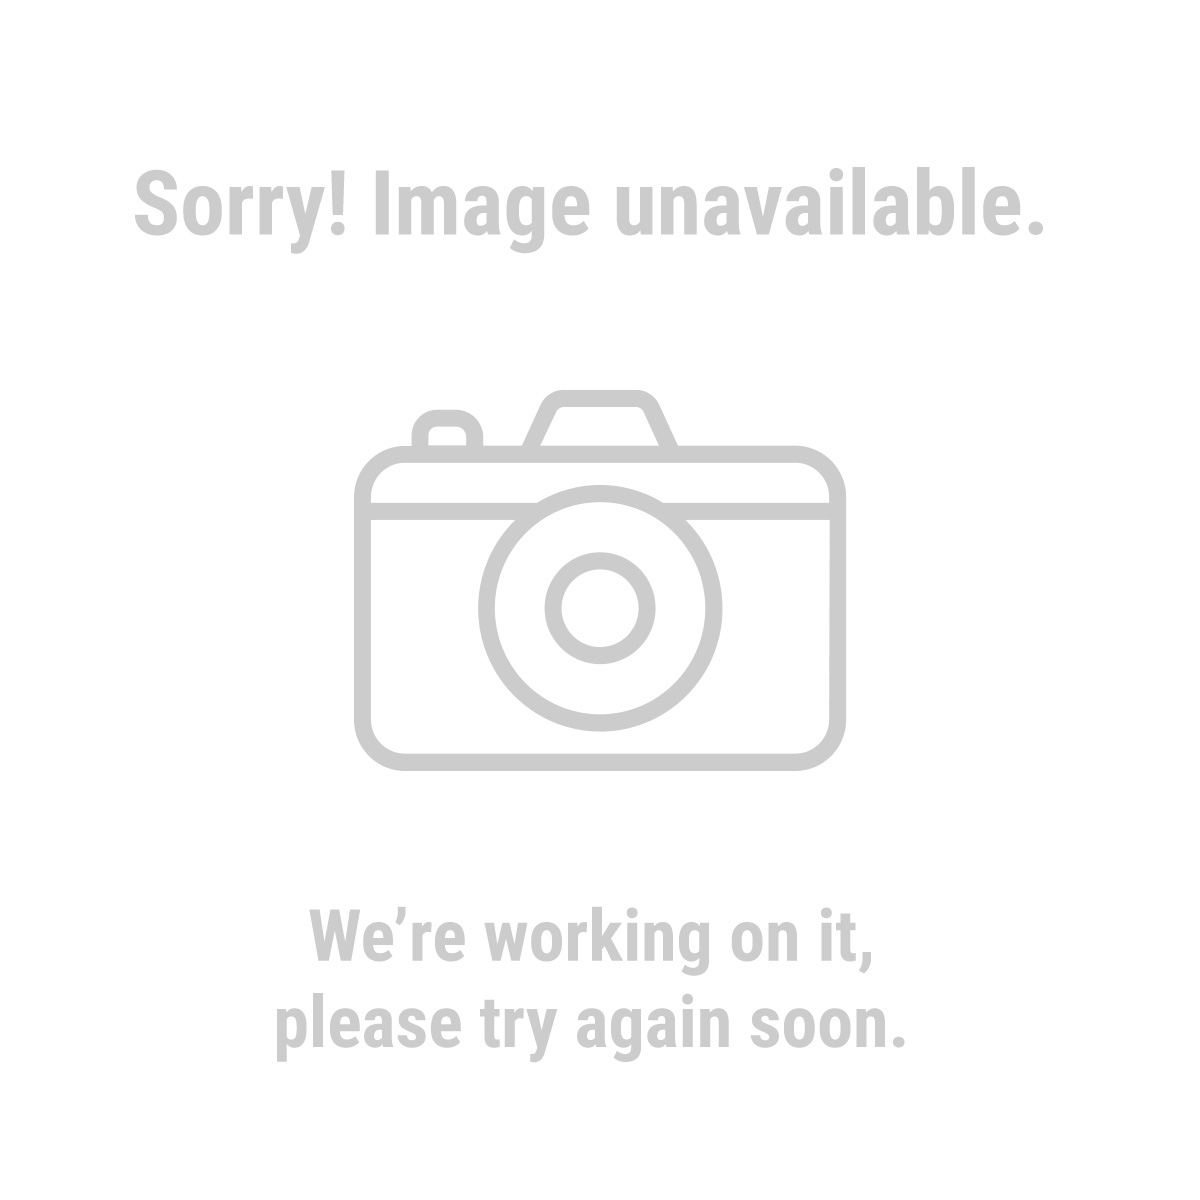 Rolling Stand For Lathe International Association Of